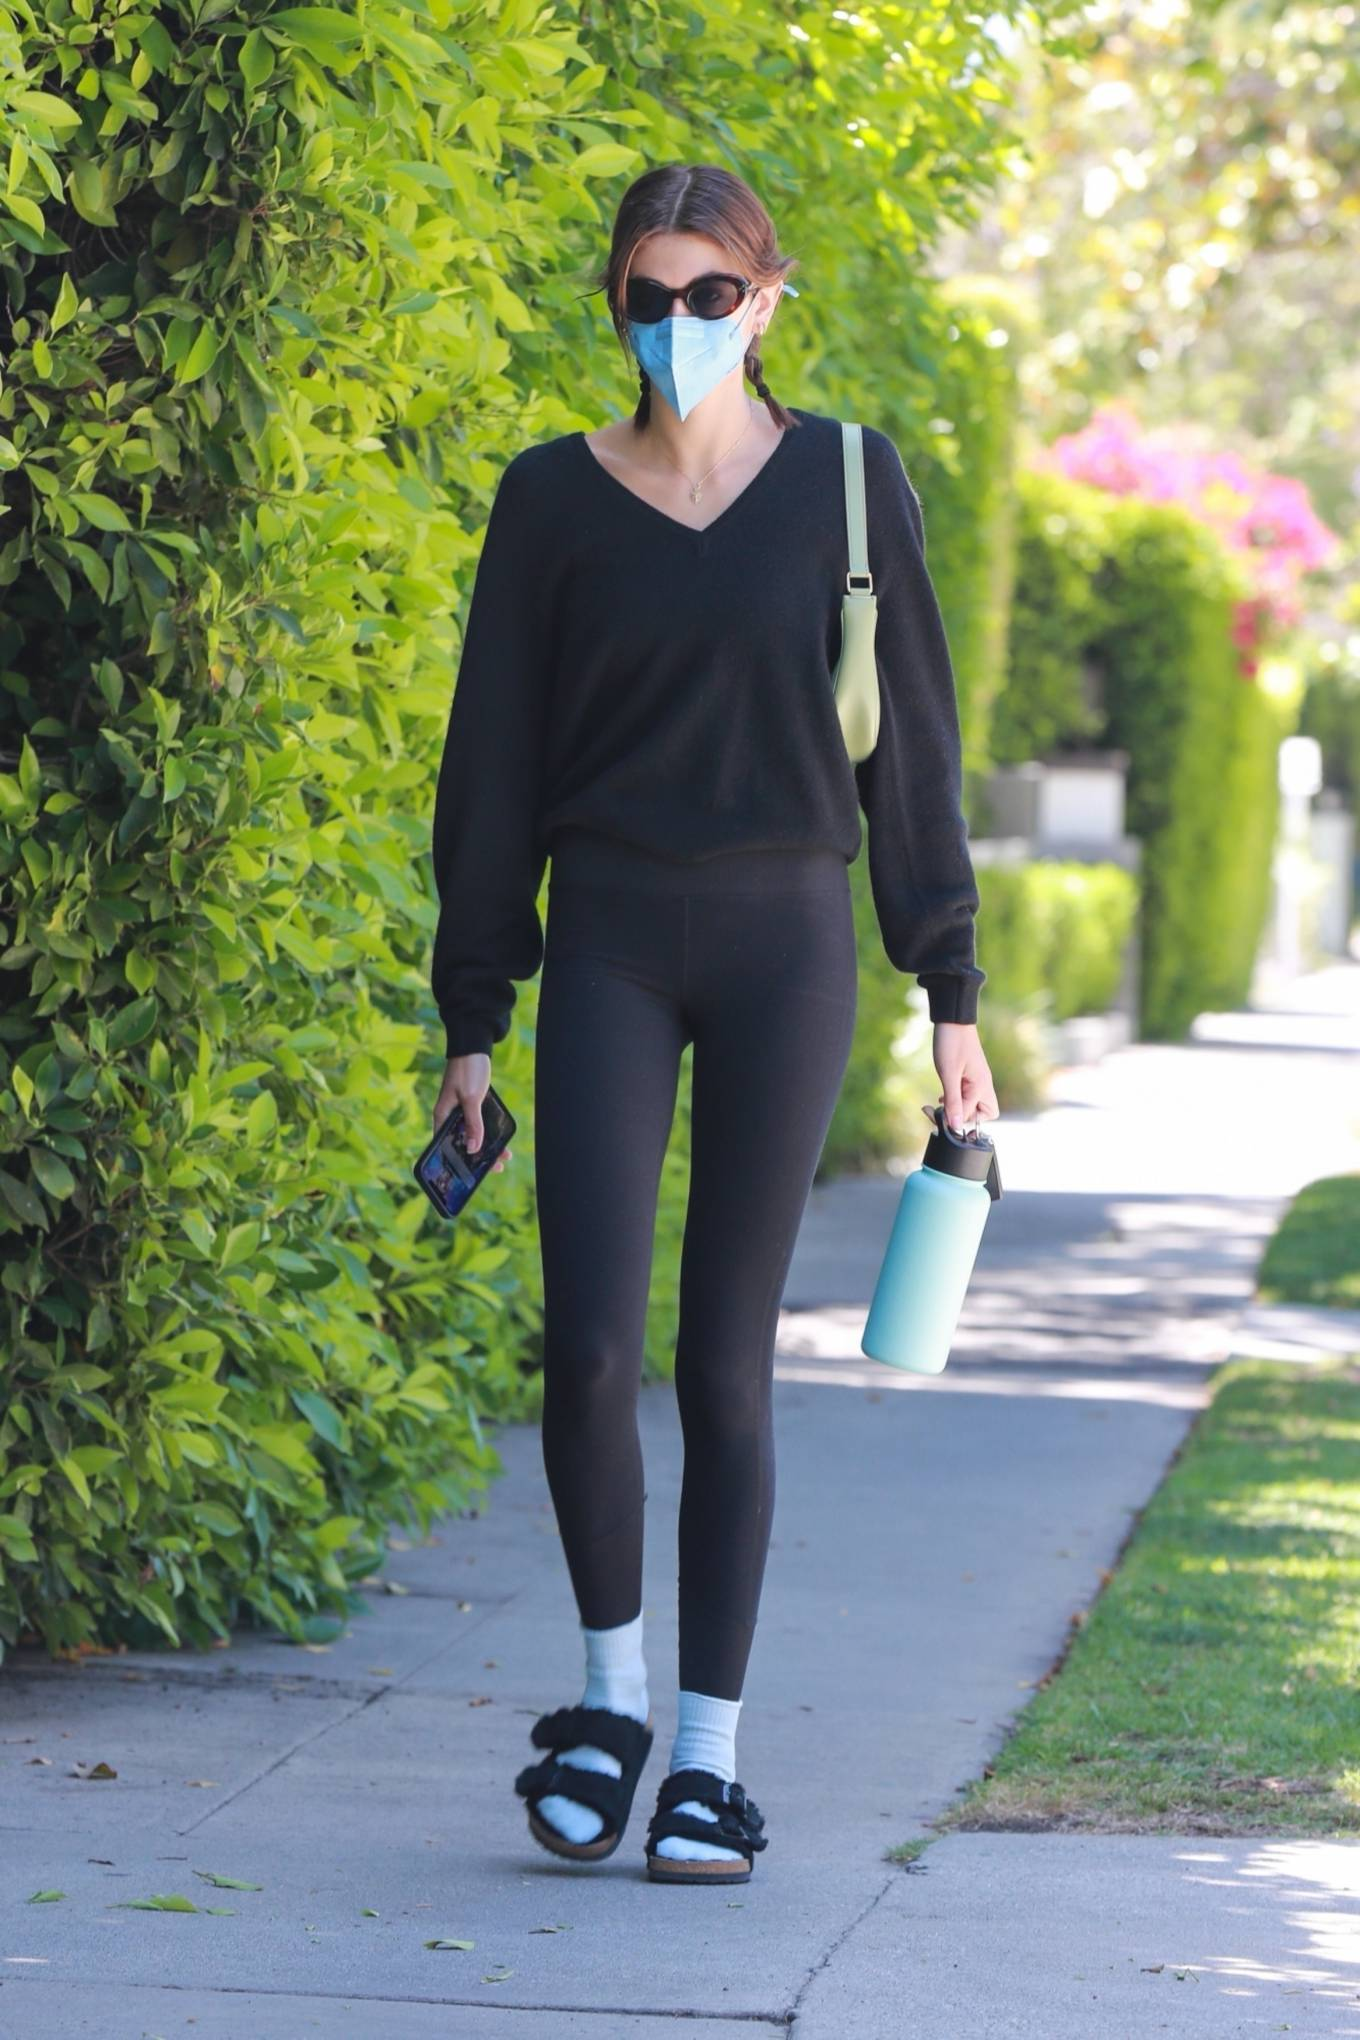 Kaia Gerber wearing a fitted black top with full sleeves and a V-neck